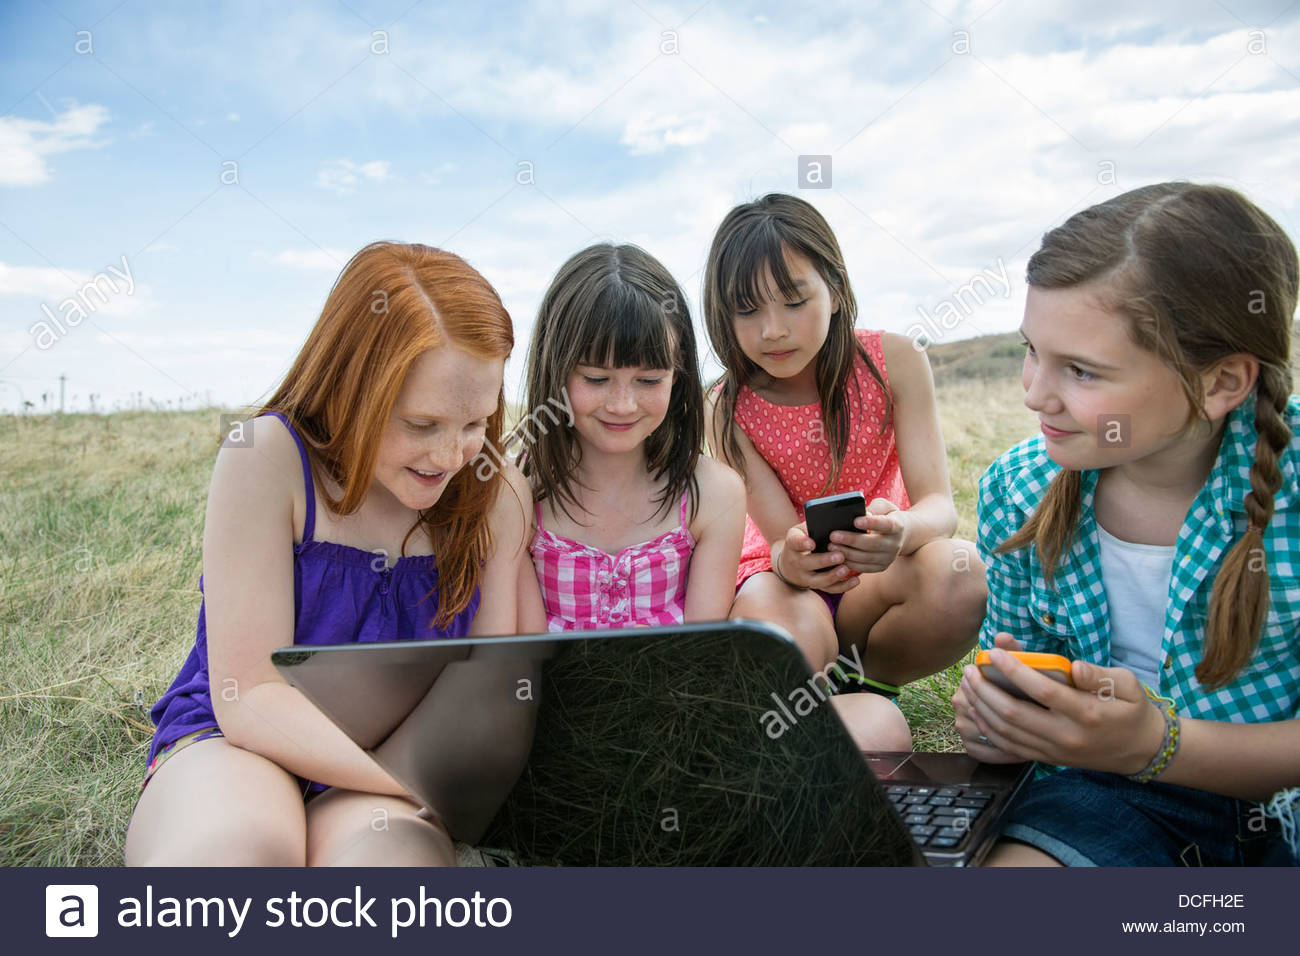 Schoolgirls with smart devices sitting outdoors - Stock Image